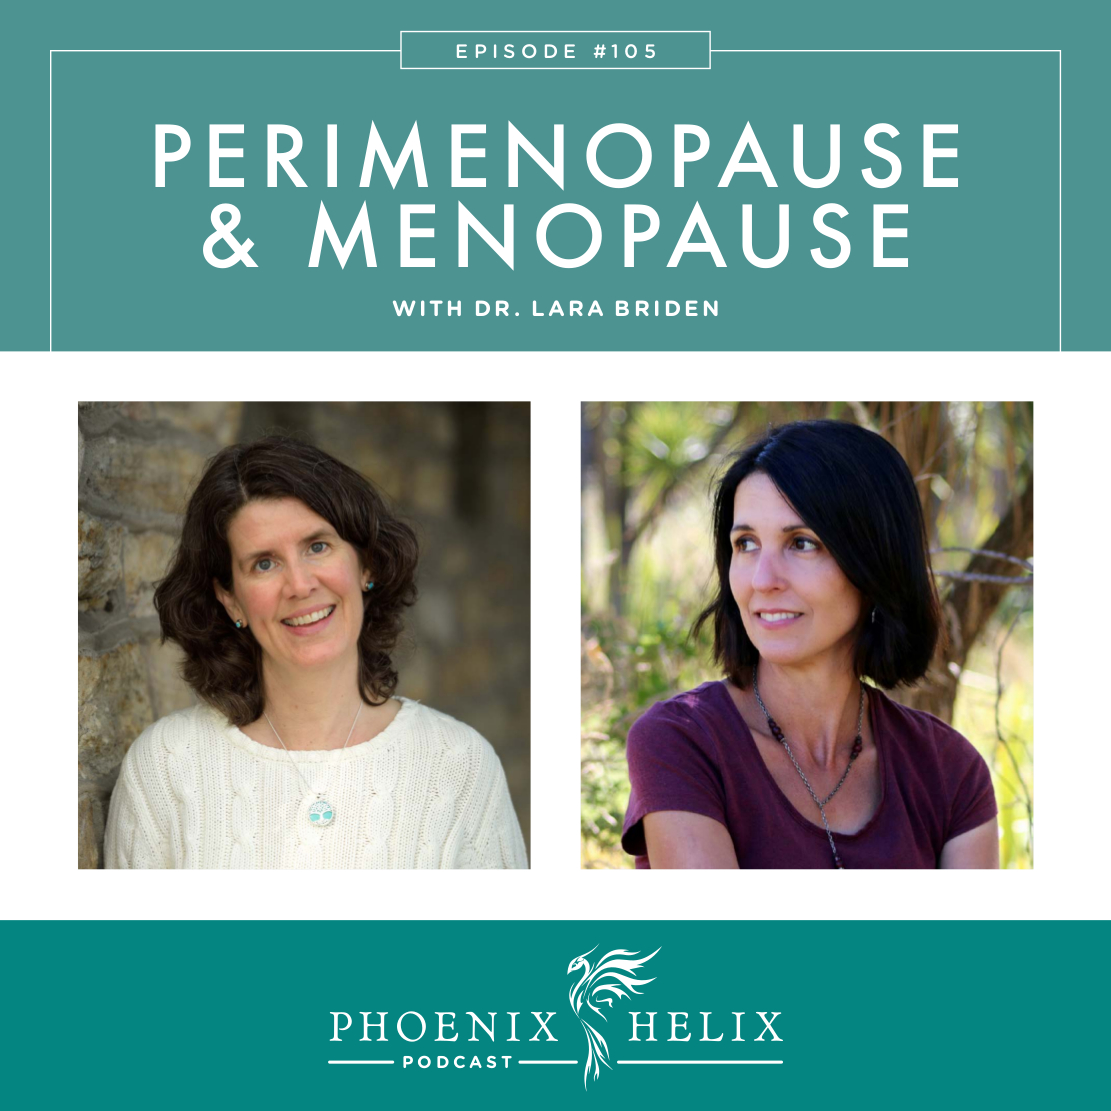 Perimenopause & Menopause with Dr. Lara Briden | Phoenix Helix Podcast